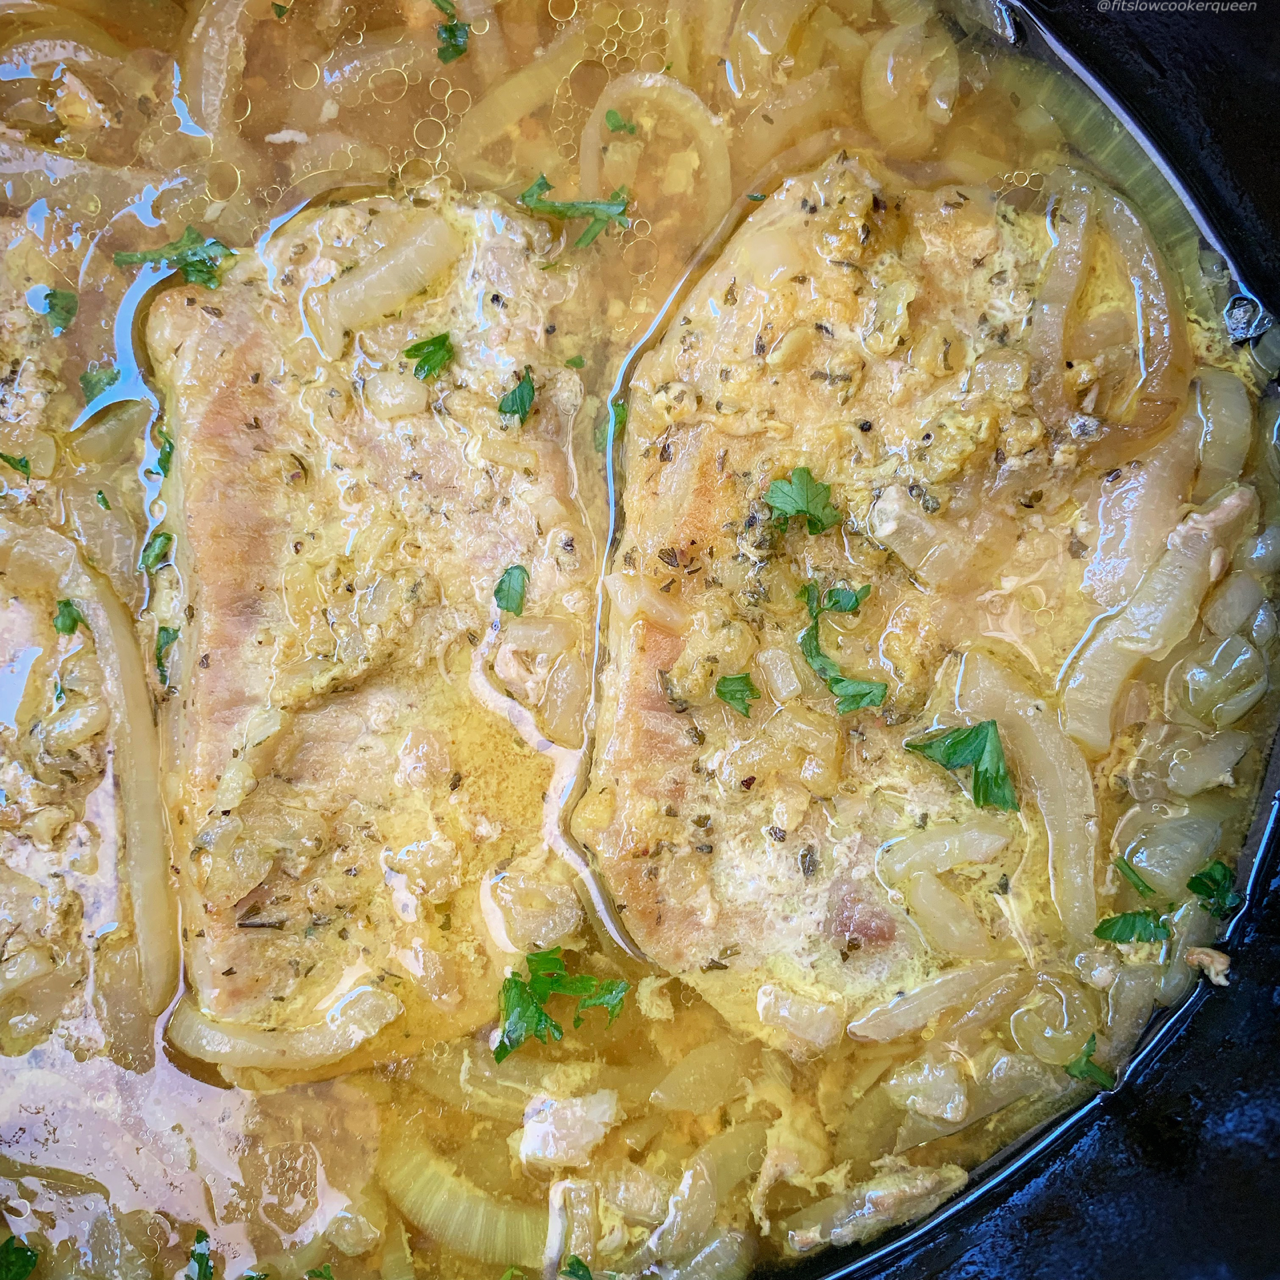 A homemade french onion mix cooks with pork chops in this low-carbketo, paleo, and whole30 slow cooker or Instant Pot recipe (1)